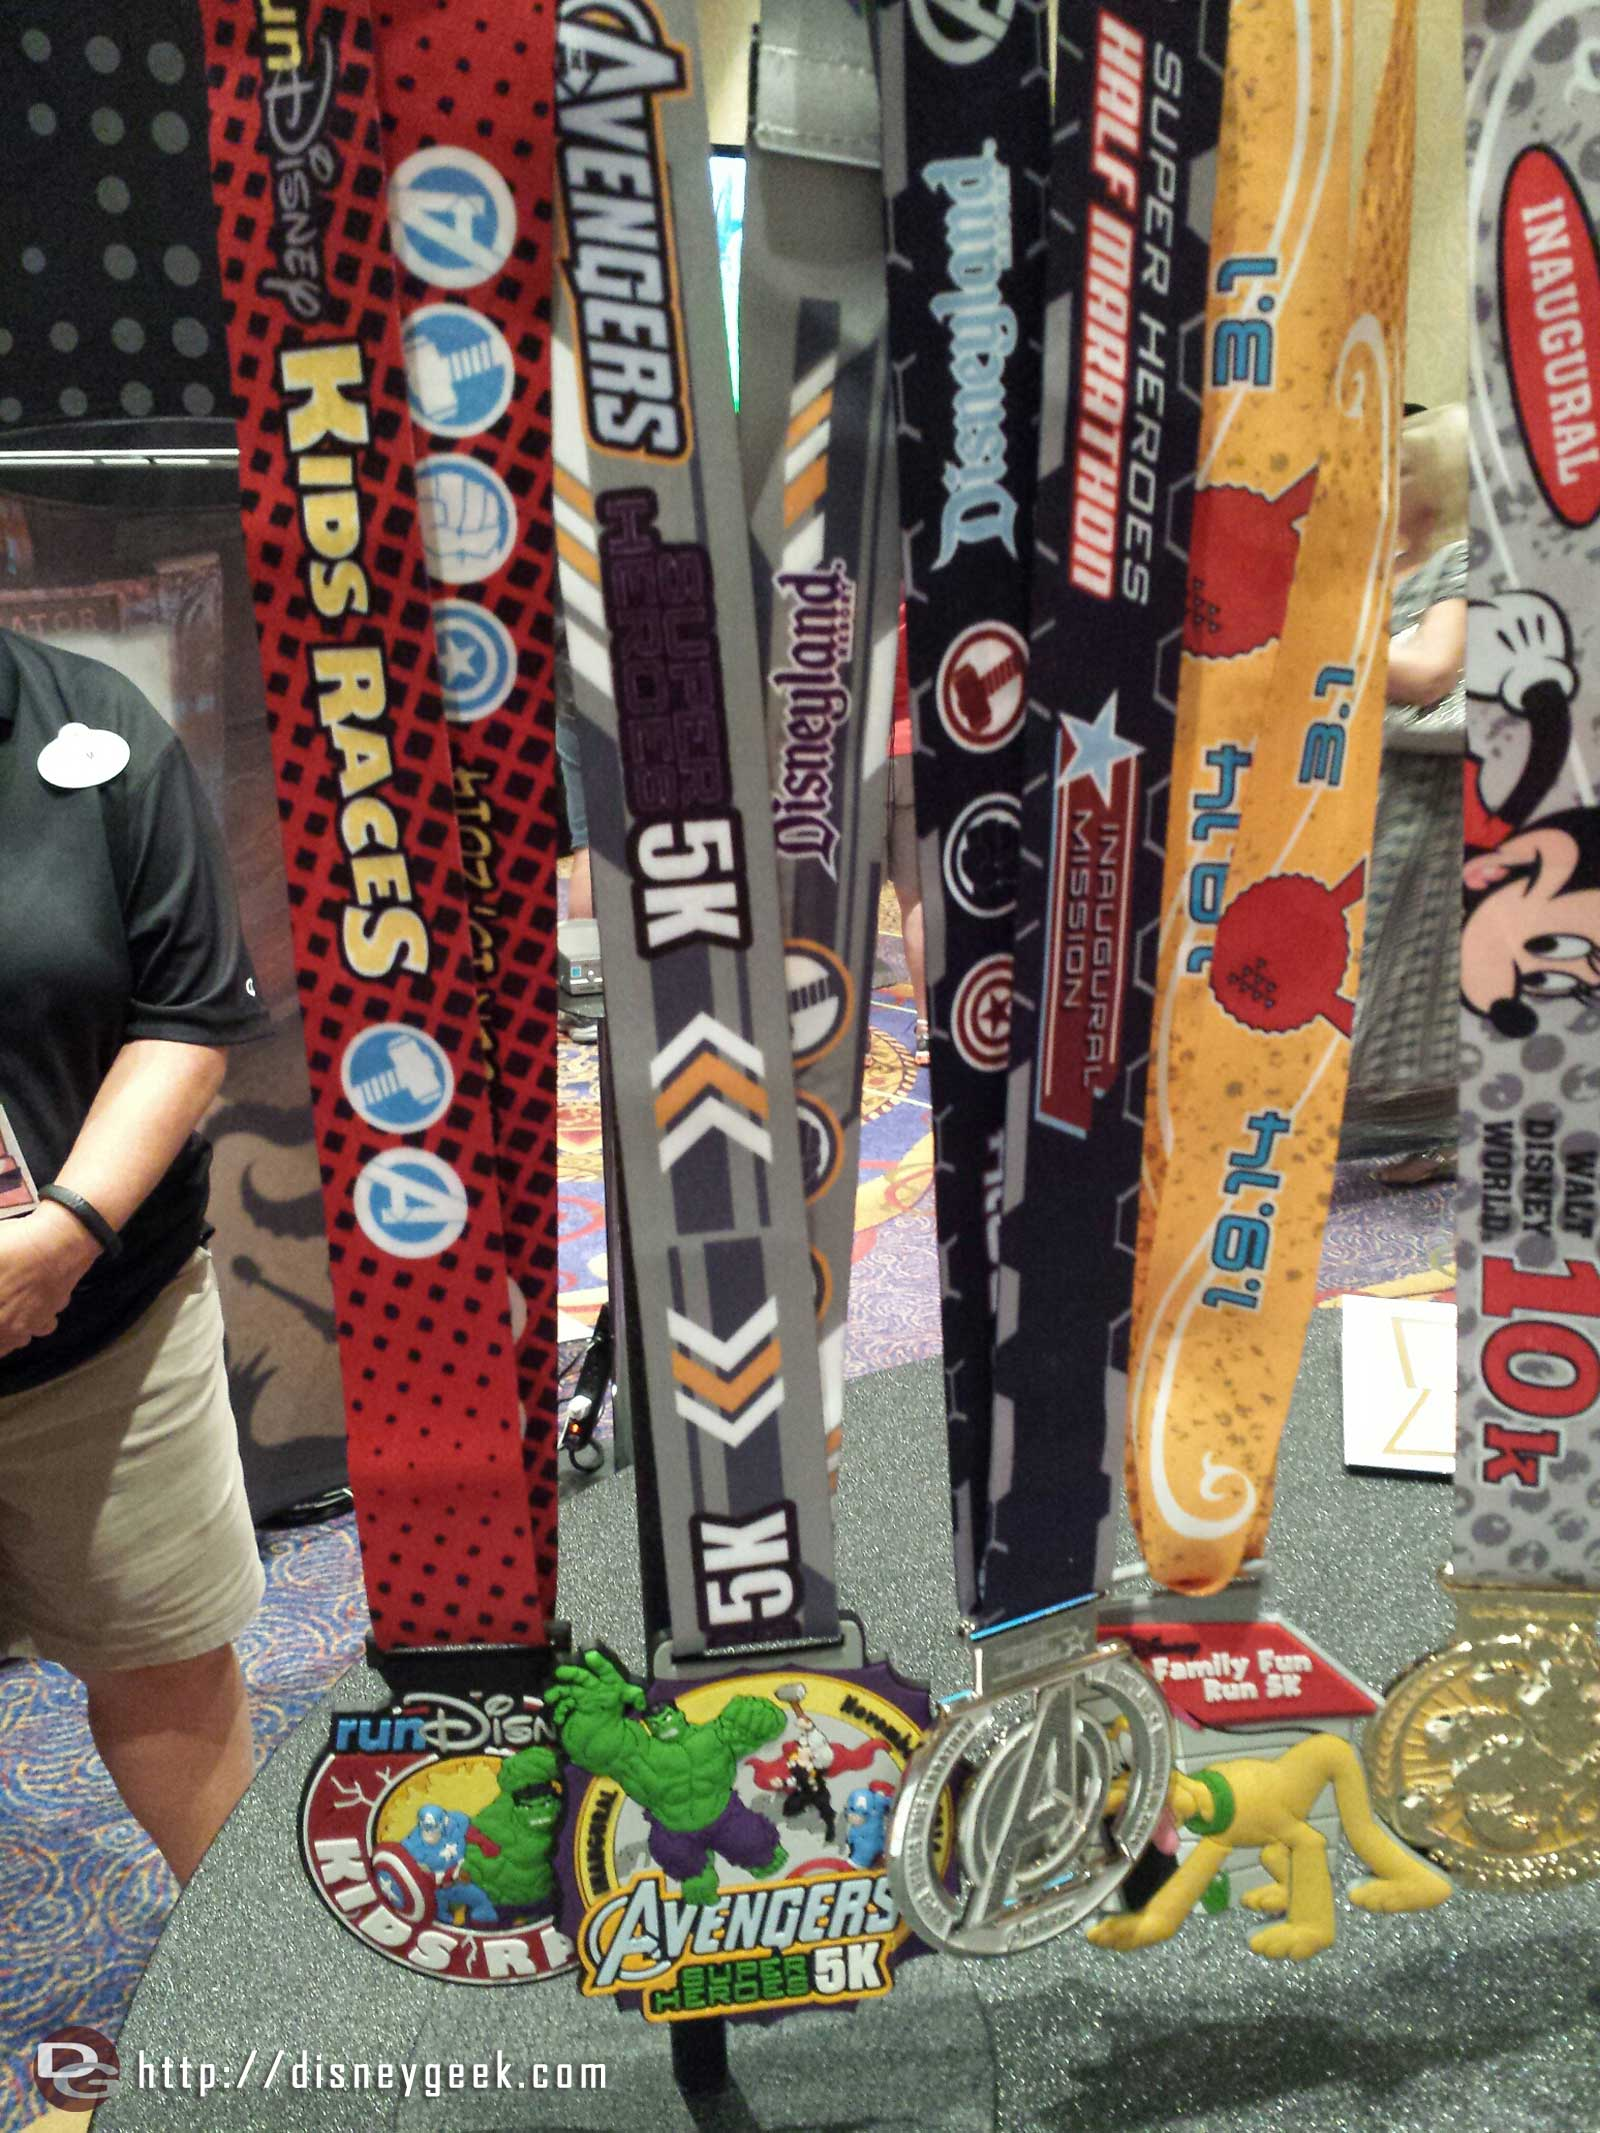 Some of the Marvel race weekend medals on display #runDisney